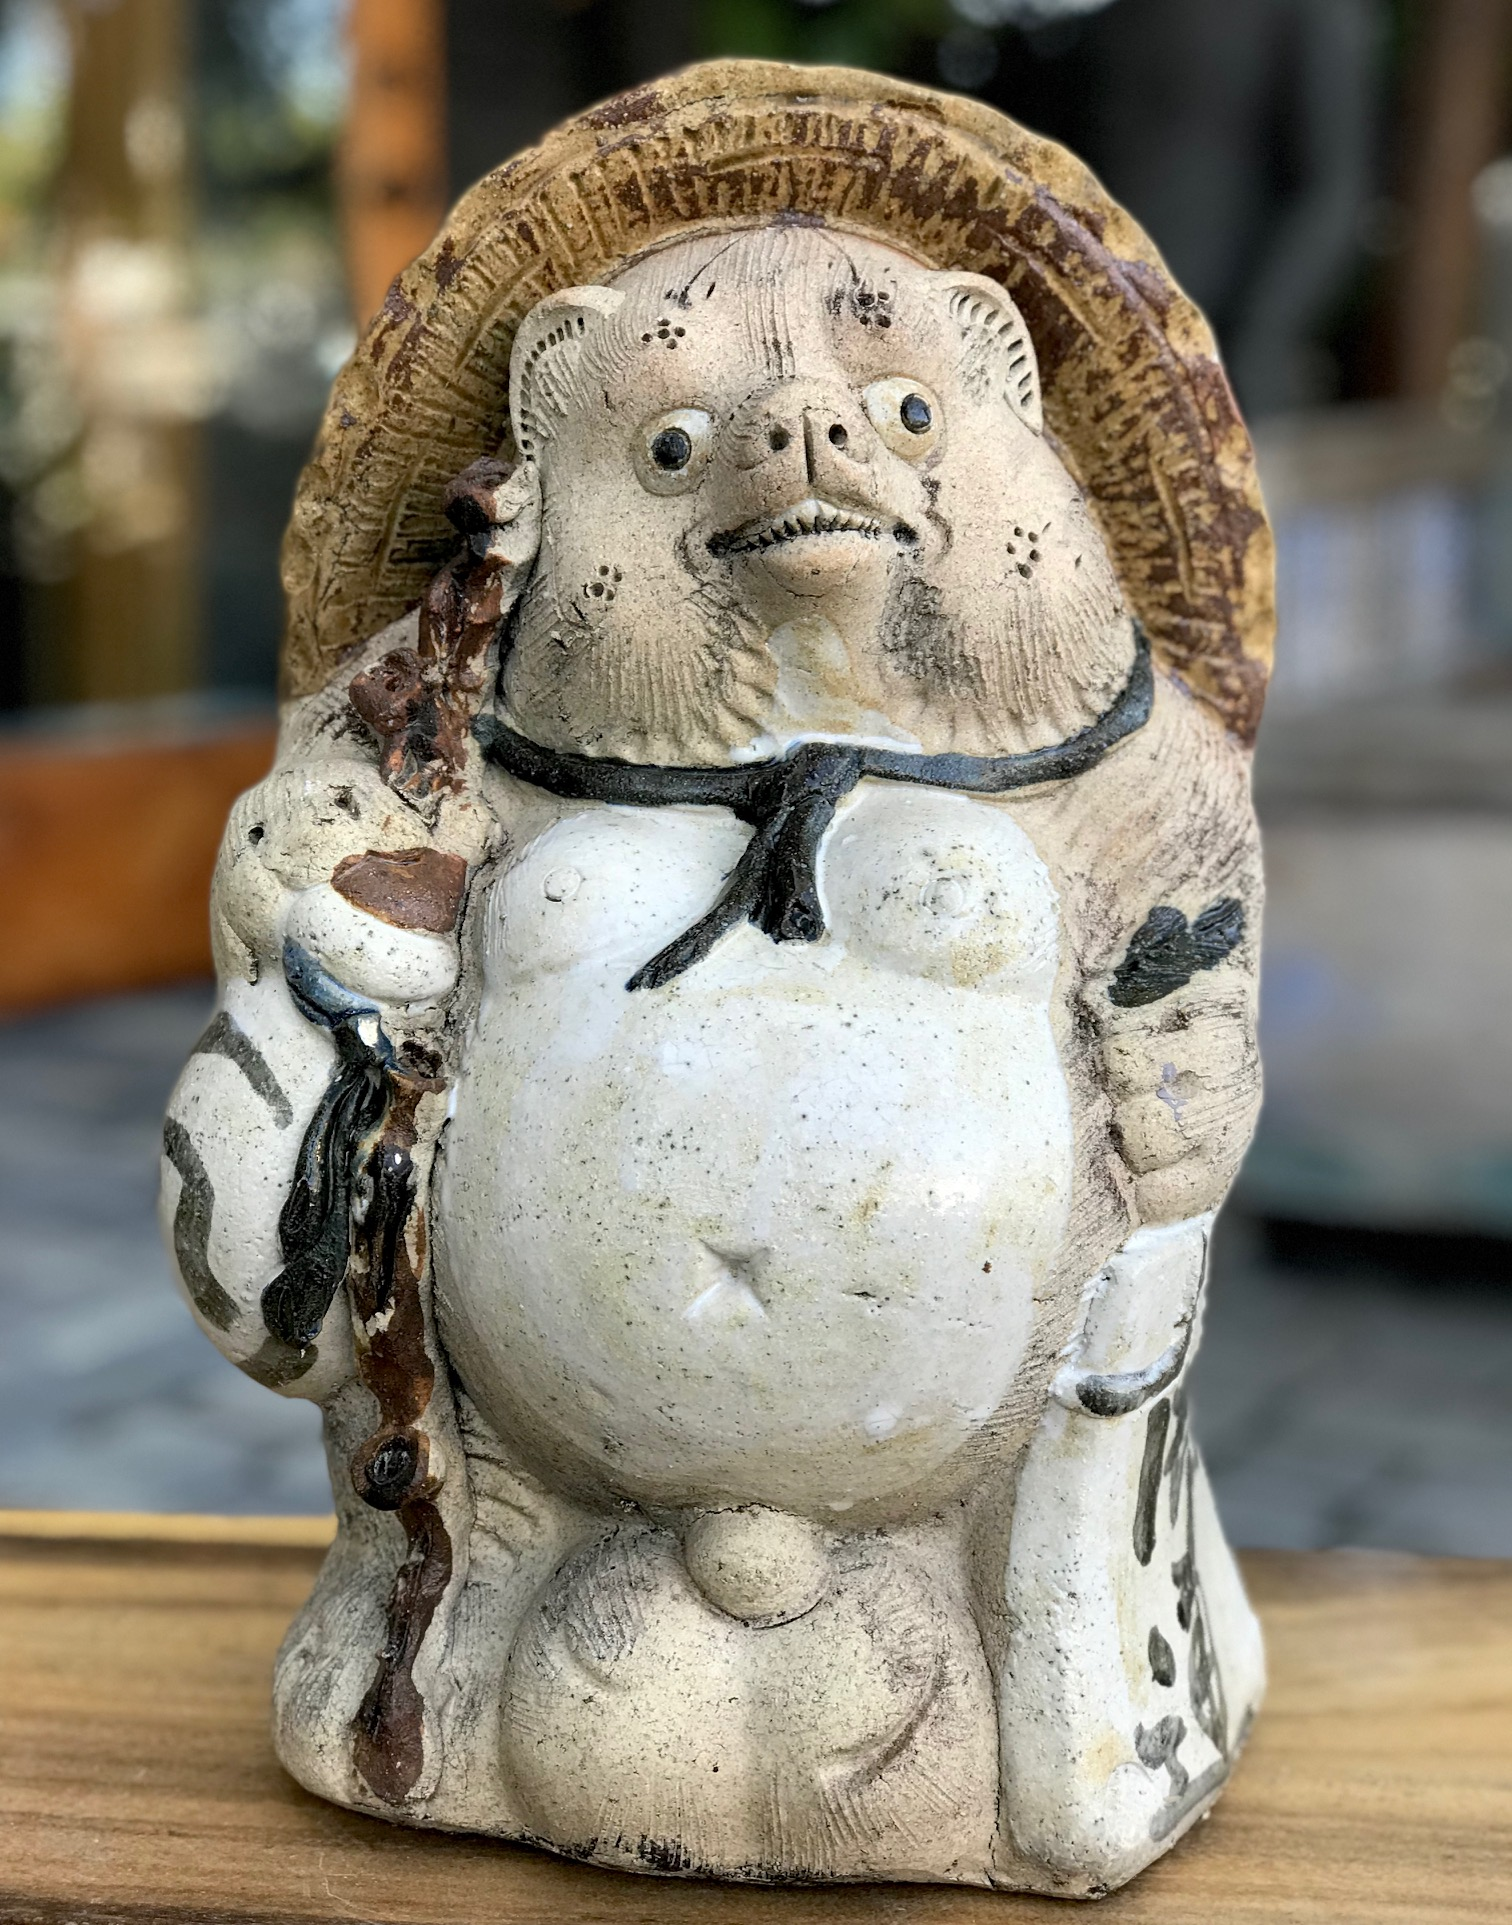 """Shigaraki Tanuki, Tanuki have a very complex and interesting folkloric history. While largely unheard of in the states, Tanuki have been among the most significant characters in Japan since ancient times. Contemporary Tanuki are primarily a welcoming symbol of prosperity. In the mid 20th century the character was adapted, both visually and symbolically, to suit modern culture and, although they retain much of their prankster persona from the original 16th century creatures, they are much more benign. They have a long list of supernatural powers, most notable shape-shifting. Ancient Tanuki, humorously portrayed in block prints are now mostly found in museums and private collections. Tanuki statues are often found in restaurant or shop windows and outside temples. Famous for getting drunk and not paying their bills, they are usually portrayed wearing a straw hat and carrying a flask of sake and a ledger of promissory notes. Thus they can also serve as cautionary figures against the hazards of overindulging in alcohol. They always have big bellies and humorously large testicles which they use as drums. 15"""" x 10"""" x 9 1/2"""", $375., thedavidalancollection.com , solana beach, ca"""